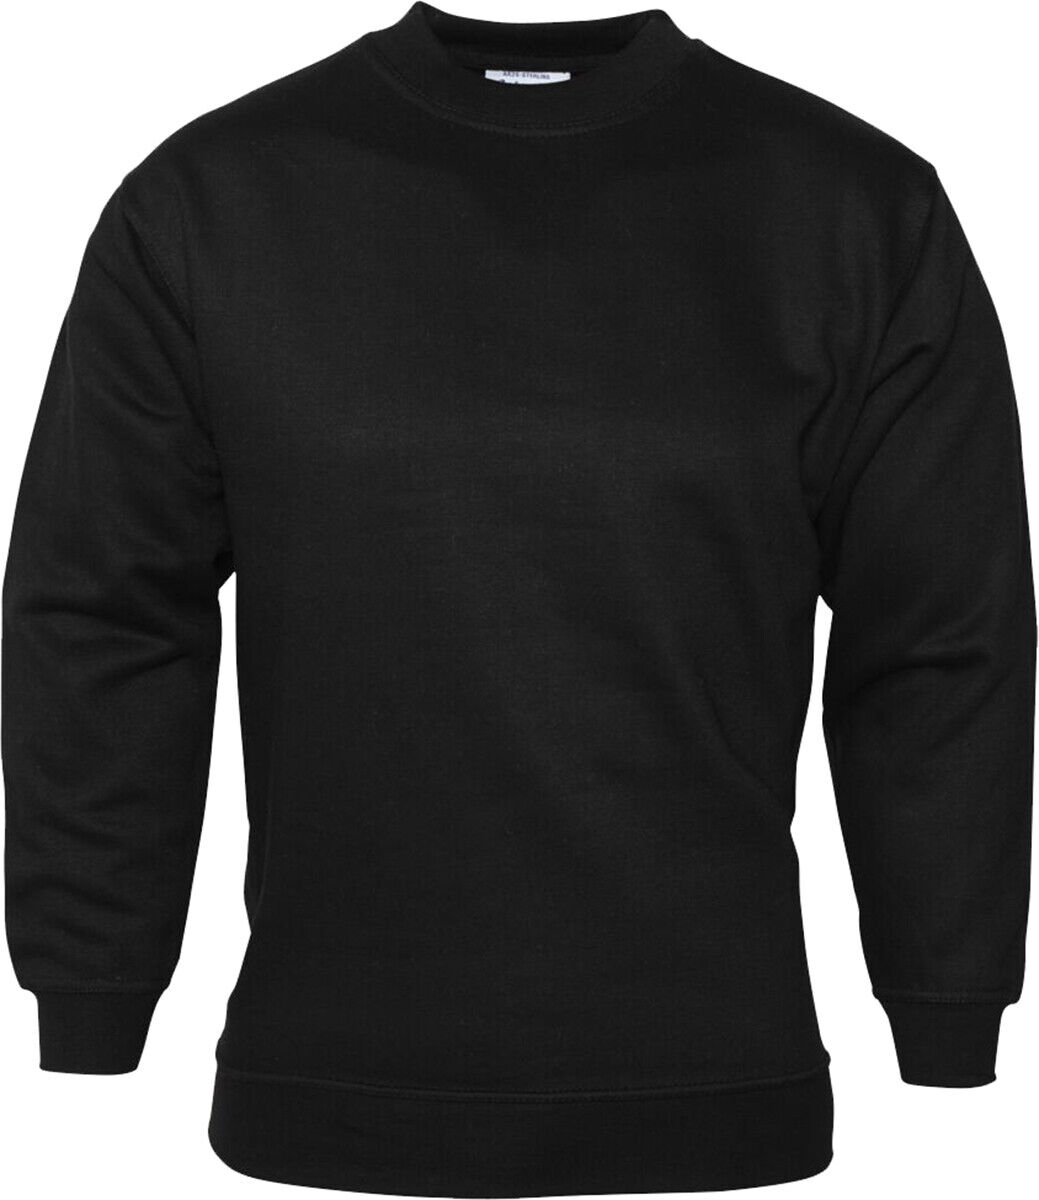 Absolute Apparel Men Adults Neck Coverseam Polycotton Sterling Sweat Shirt